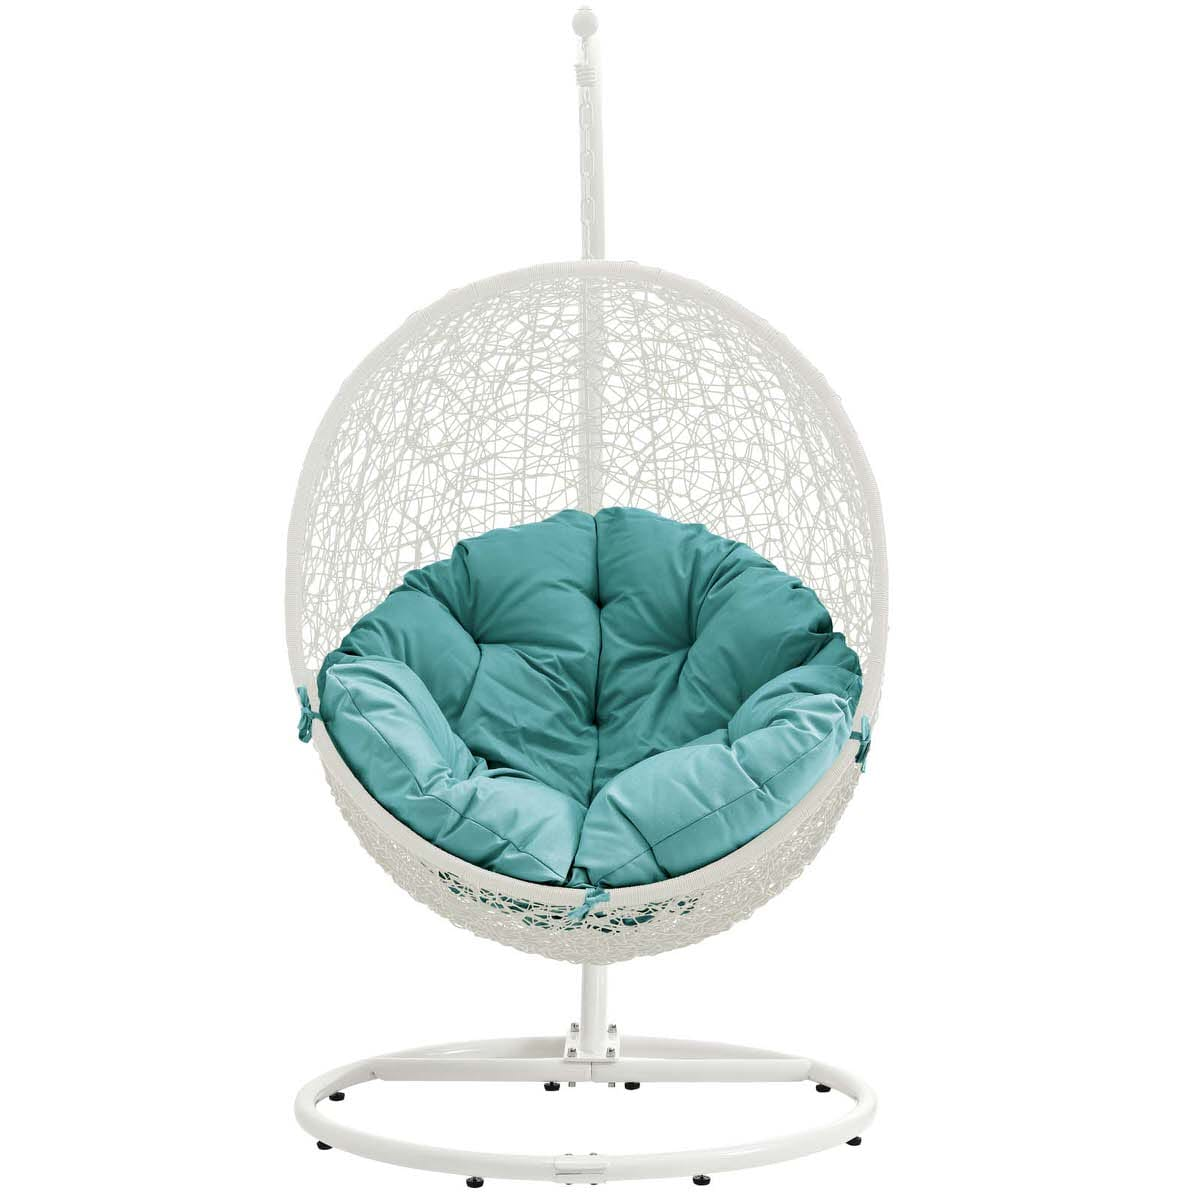 Hide Outdoor Patio Swing Chair With Stand White Turquoise